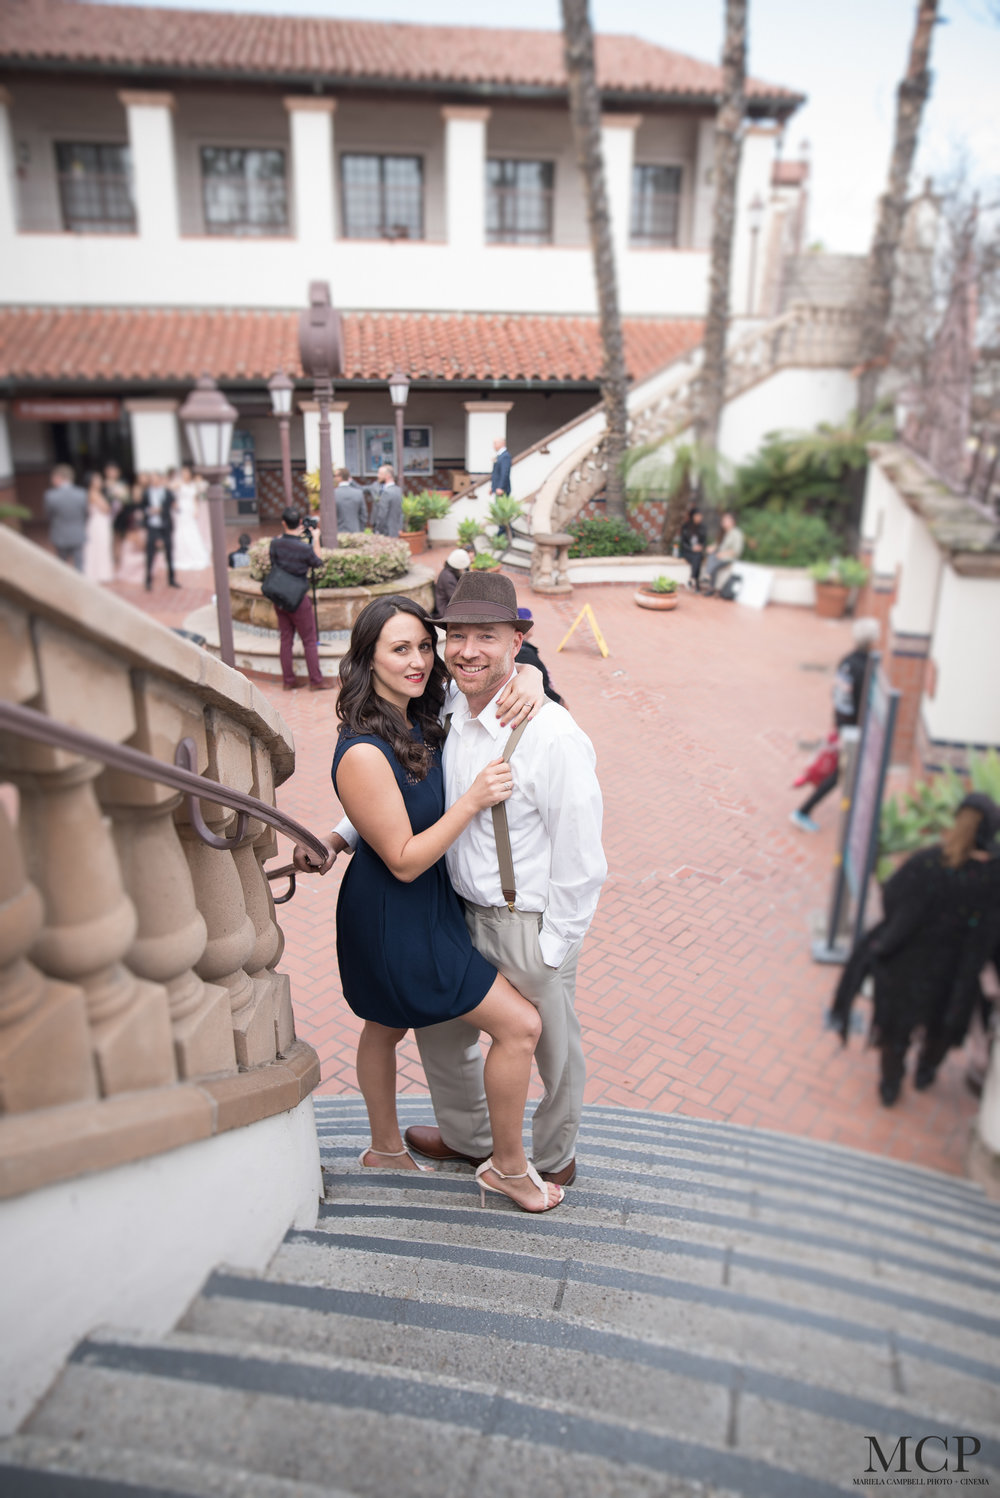 Amanda & Travis - Santa Ana Train Station - MCP-166.jpg